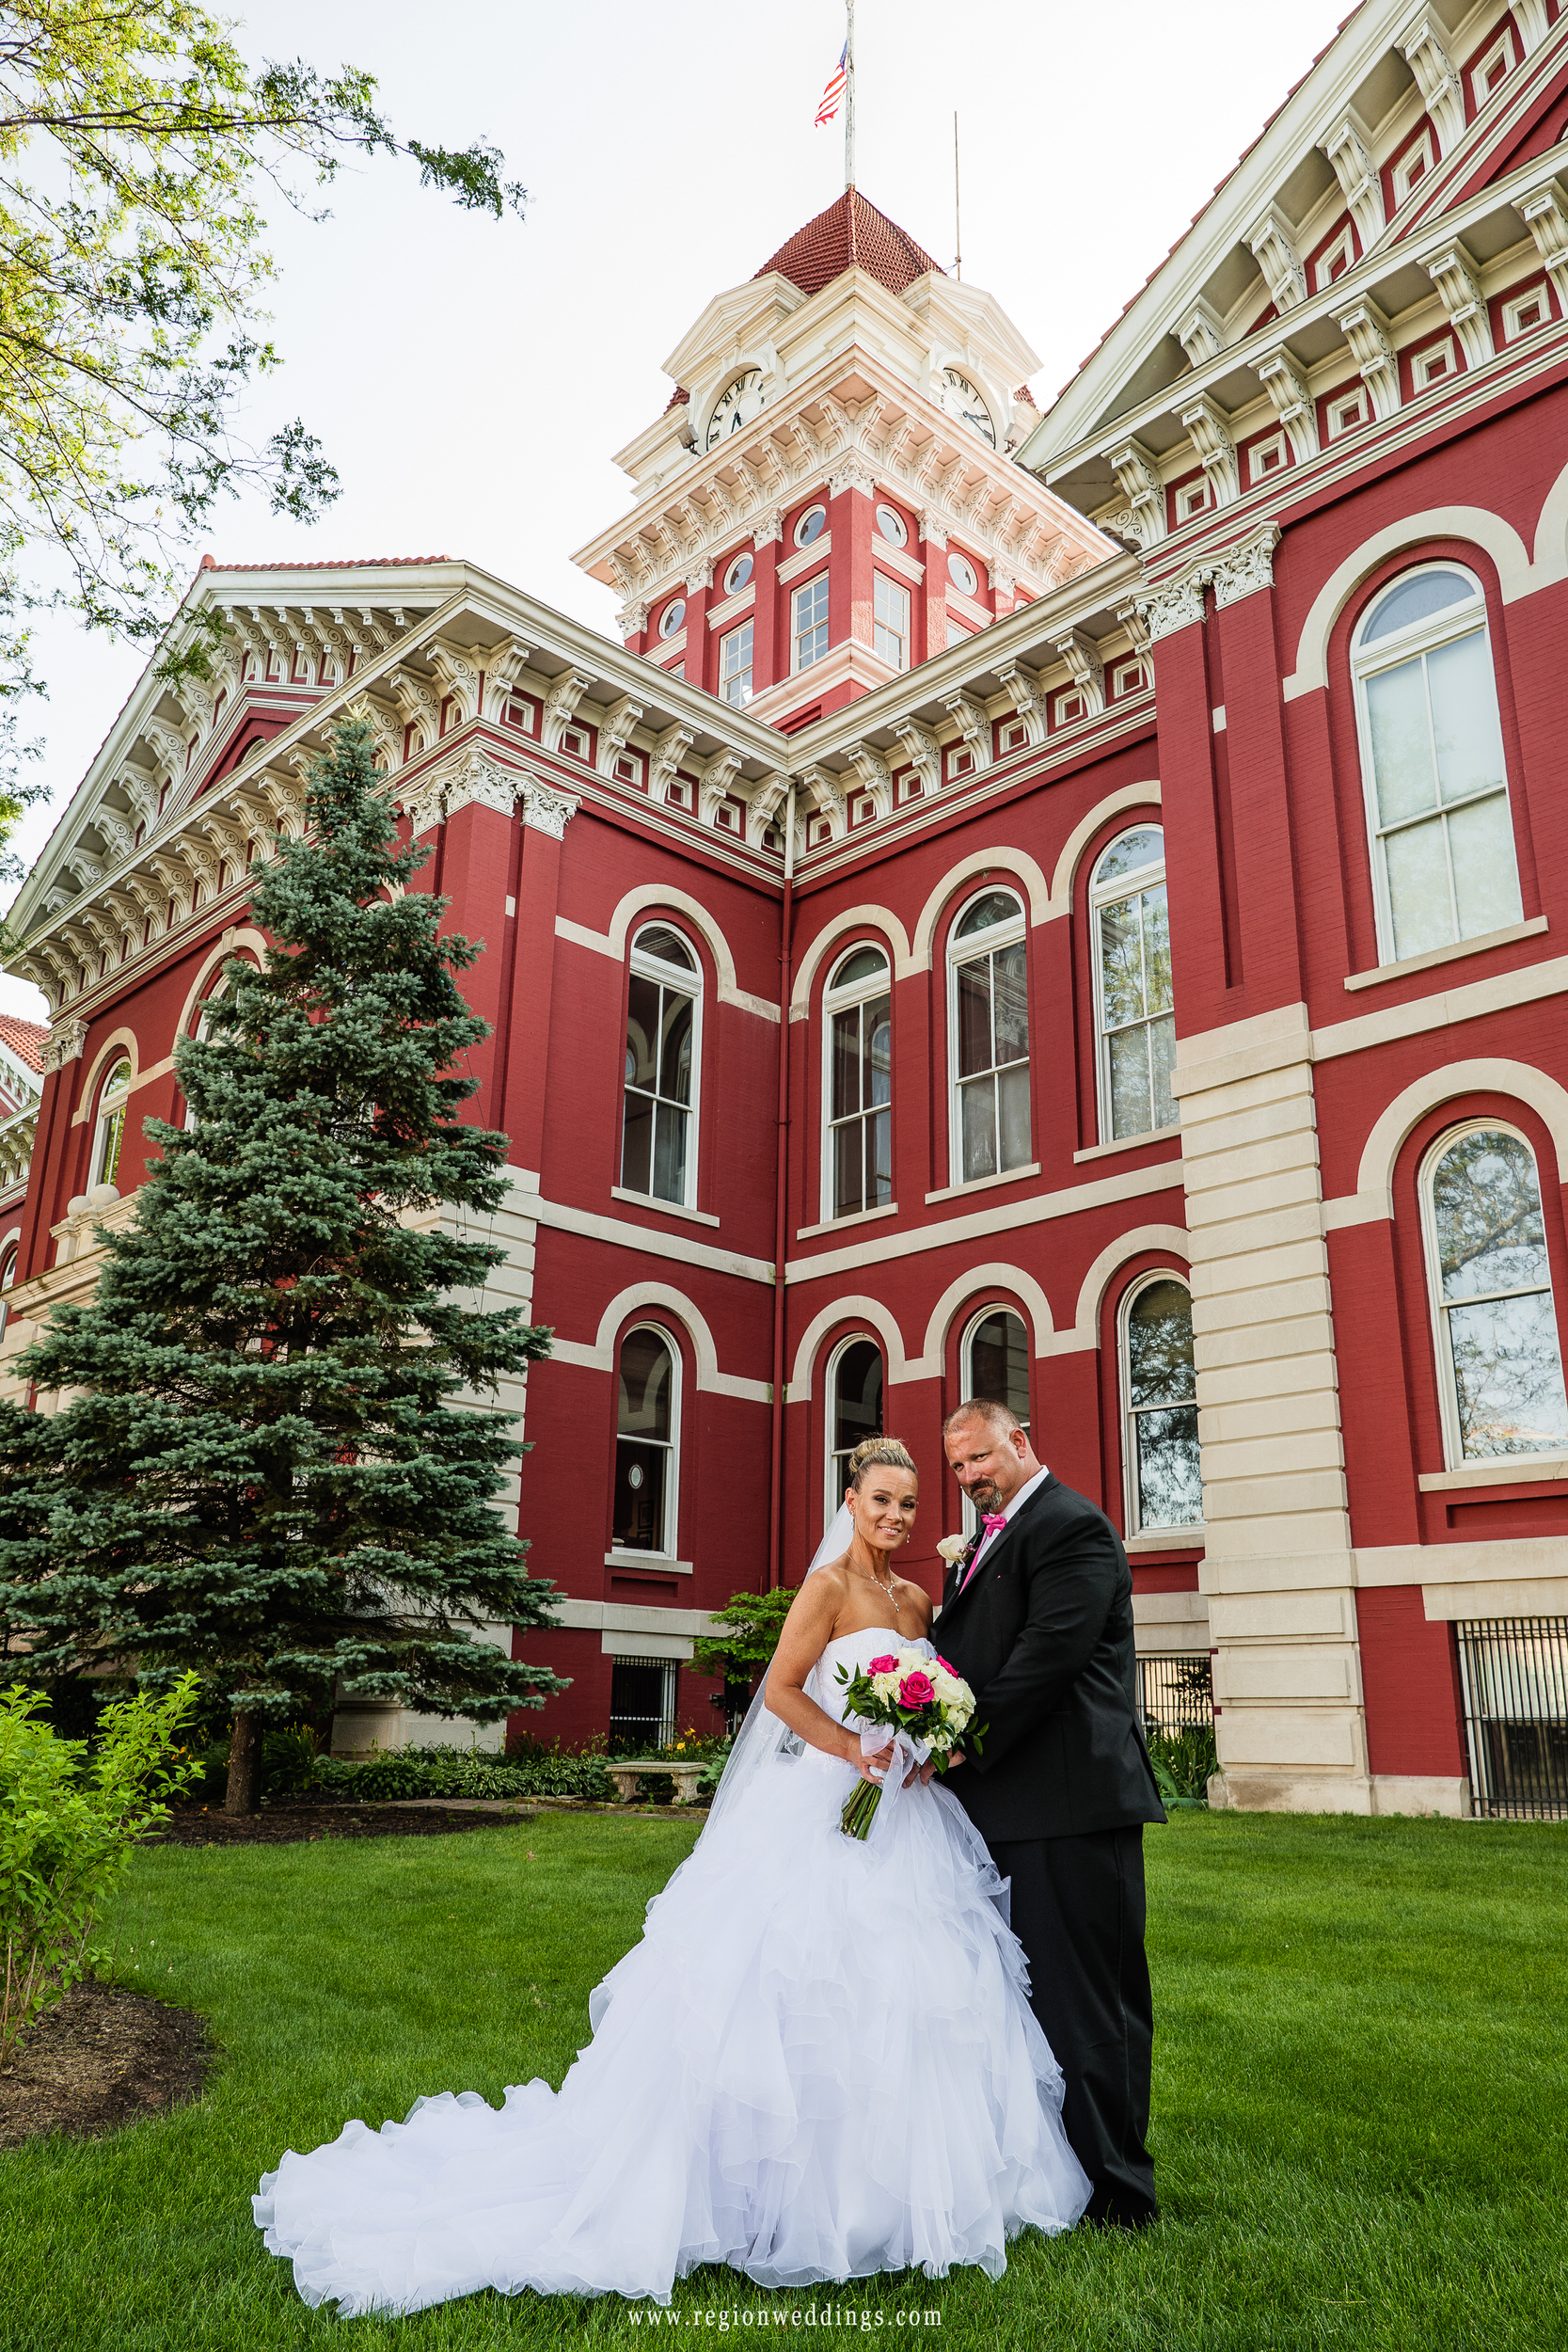 Wedding photo on the lawn of the historic Crown Point Courthouse.